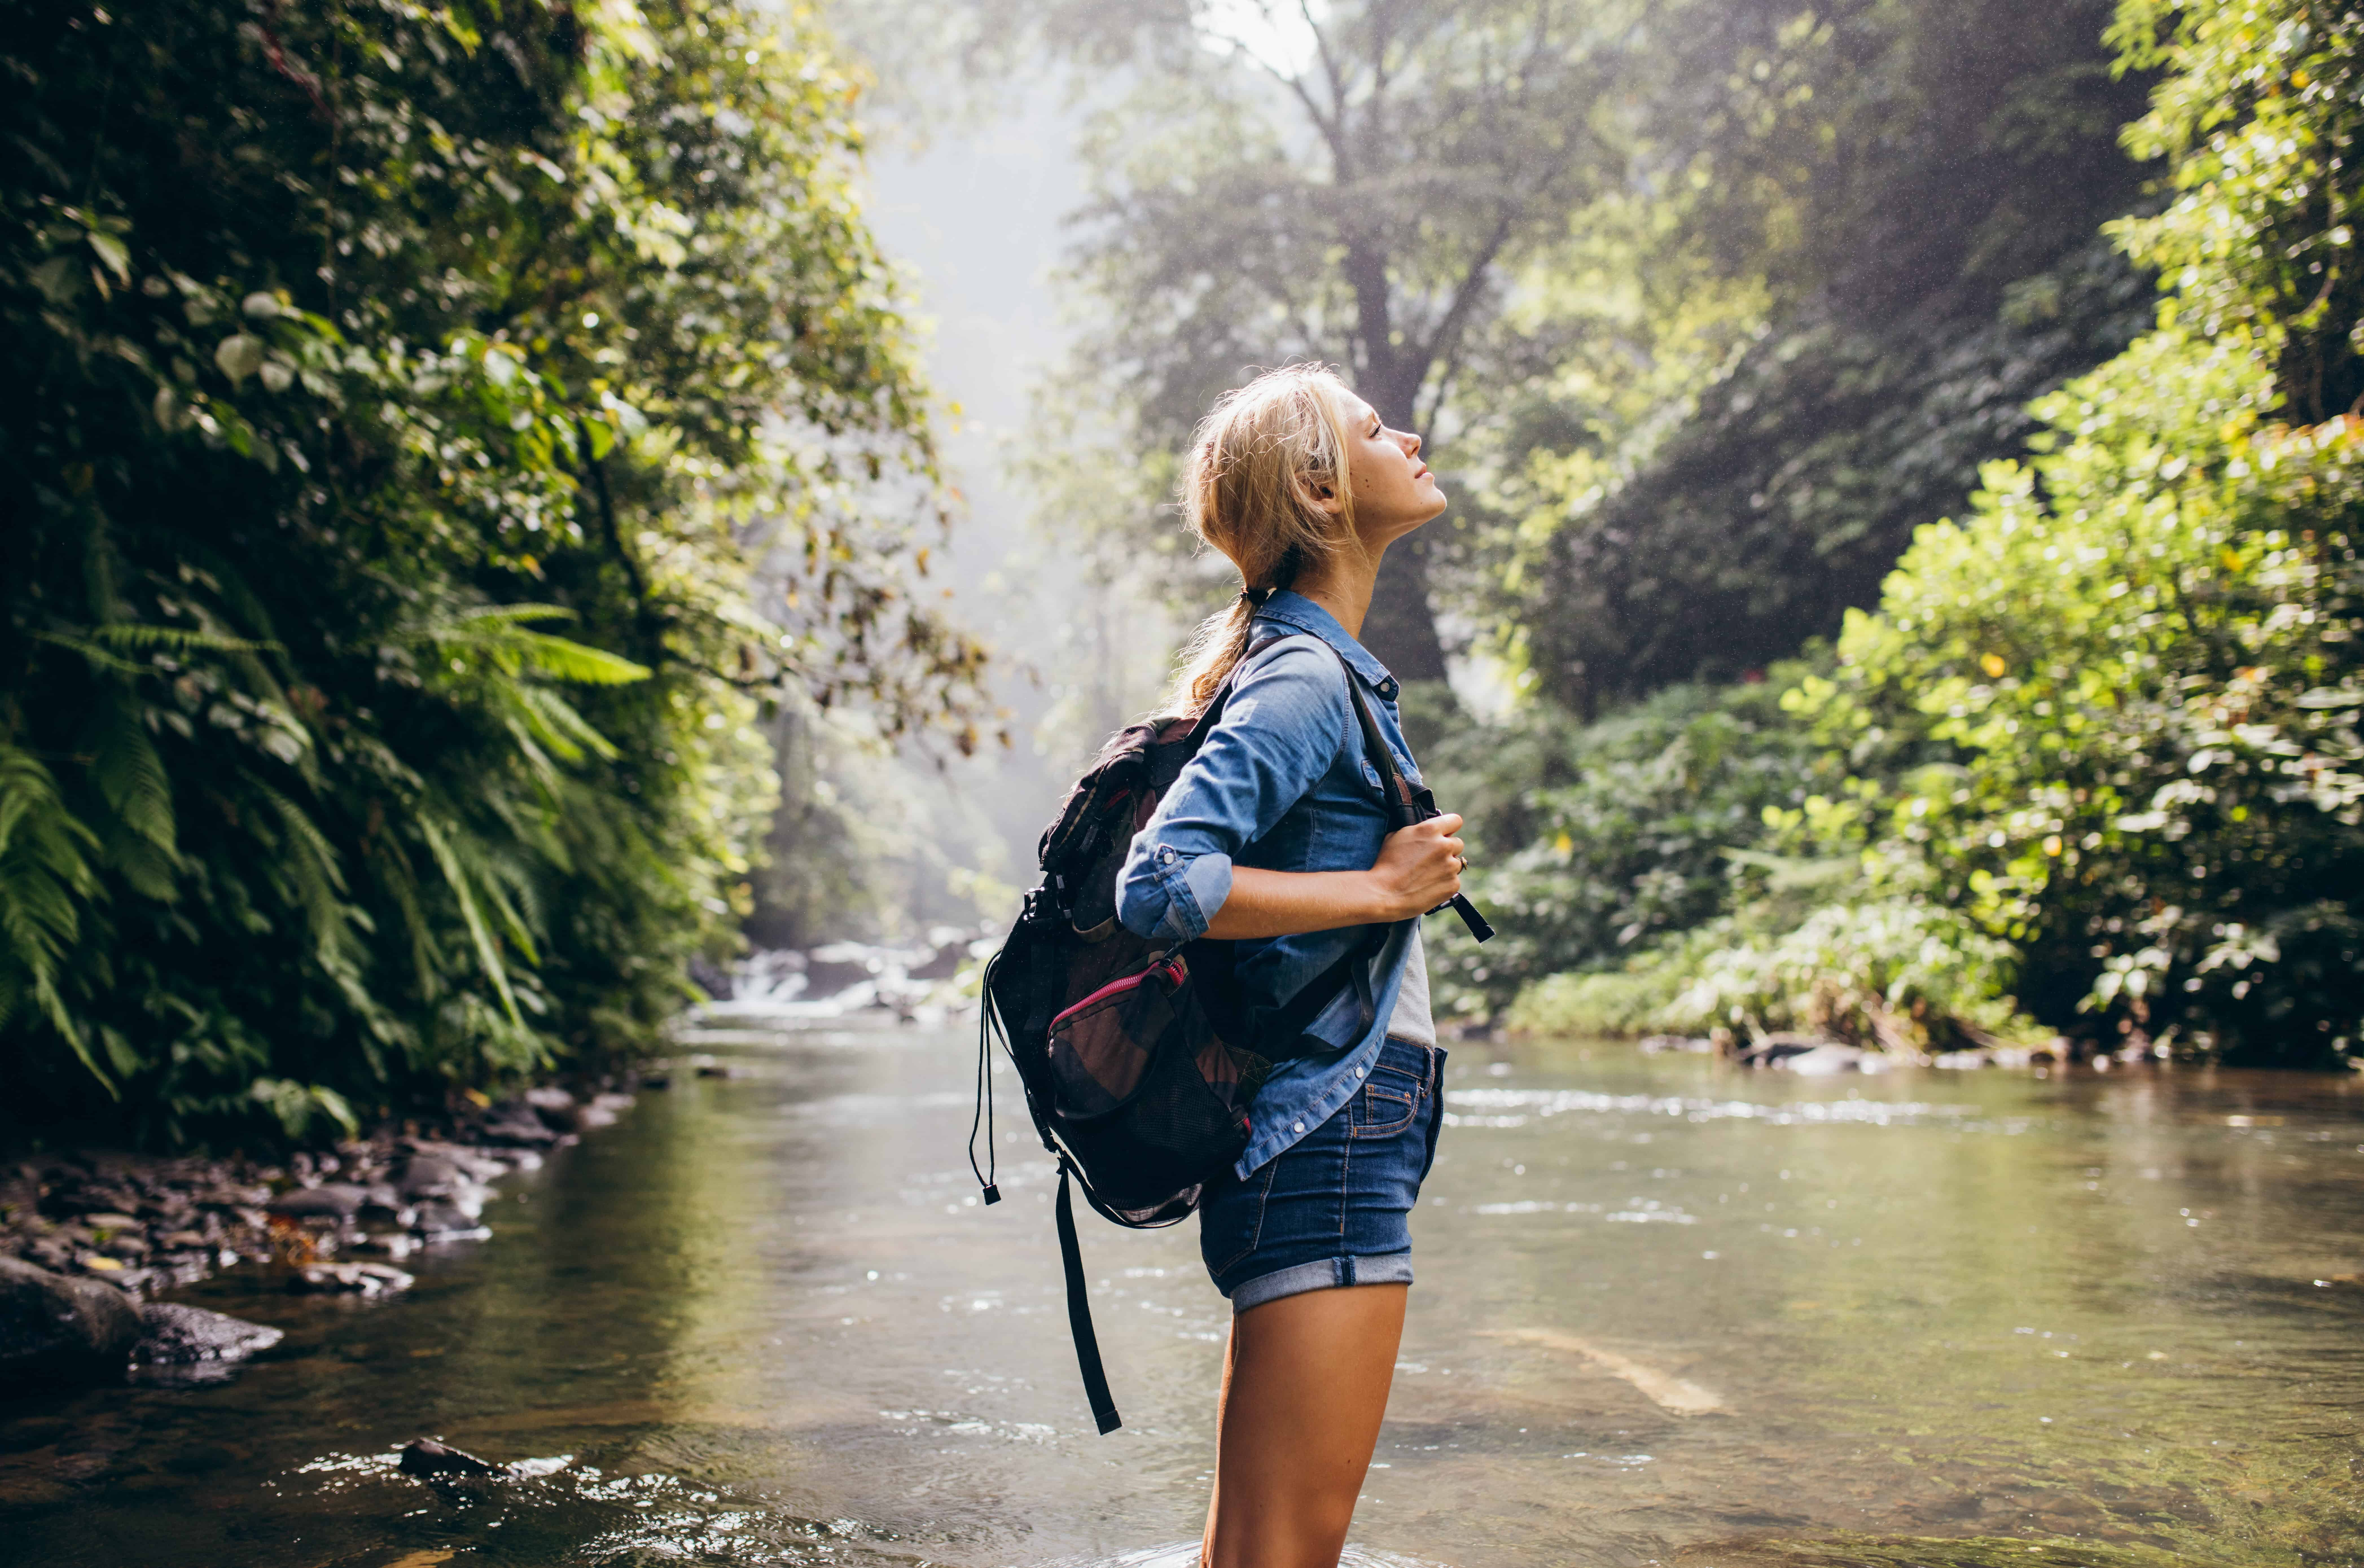 20 Best Outdoor Adventure Quotes and Sayings for Inspiration